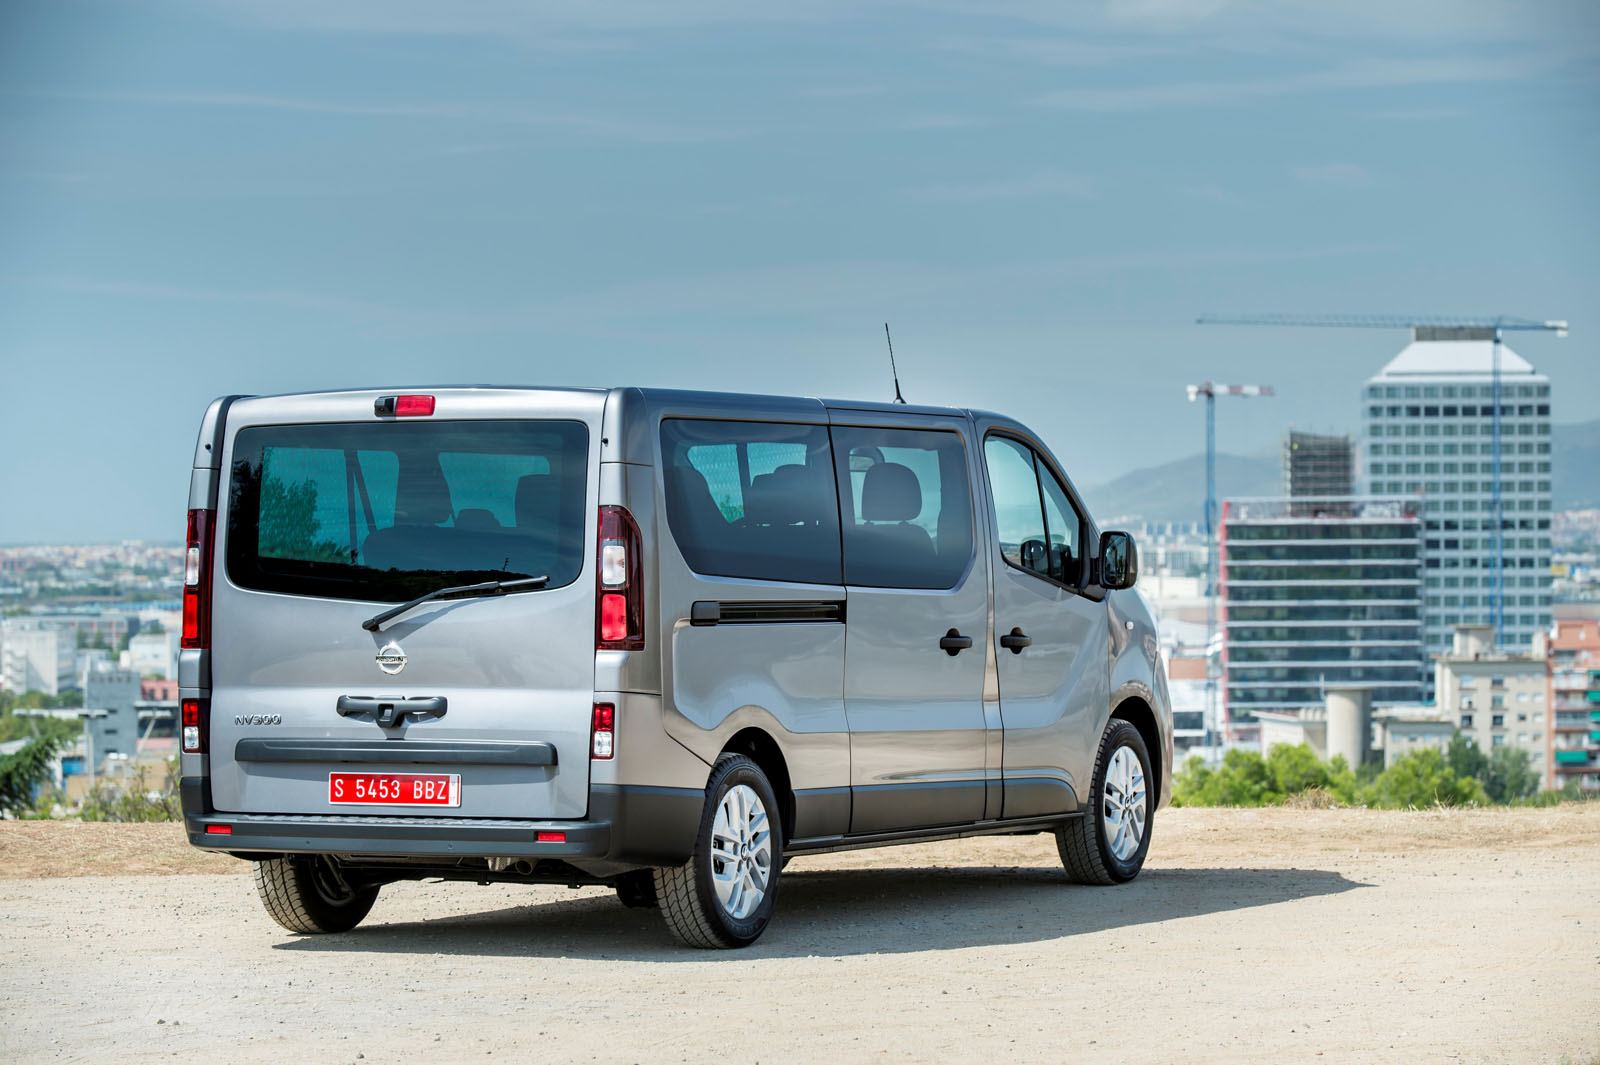 Nissan Nv300 Debuts In Hannover With New Badges Lots Of